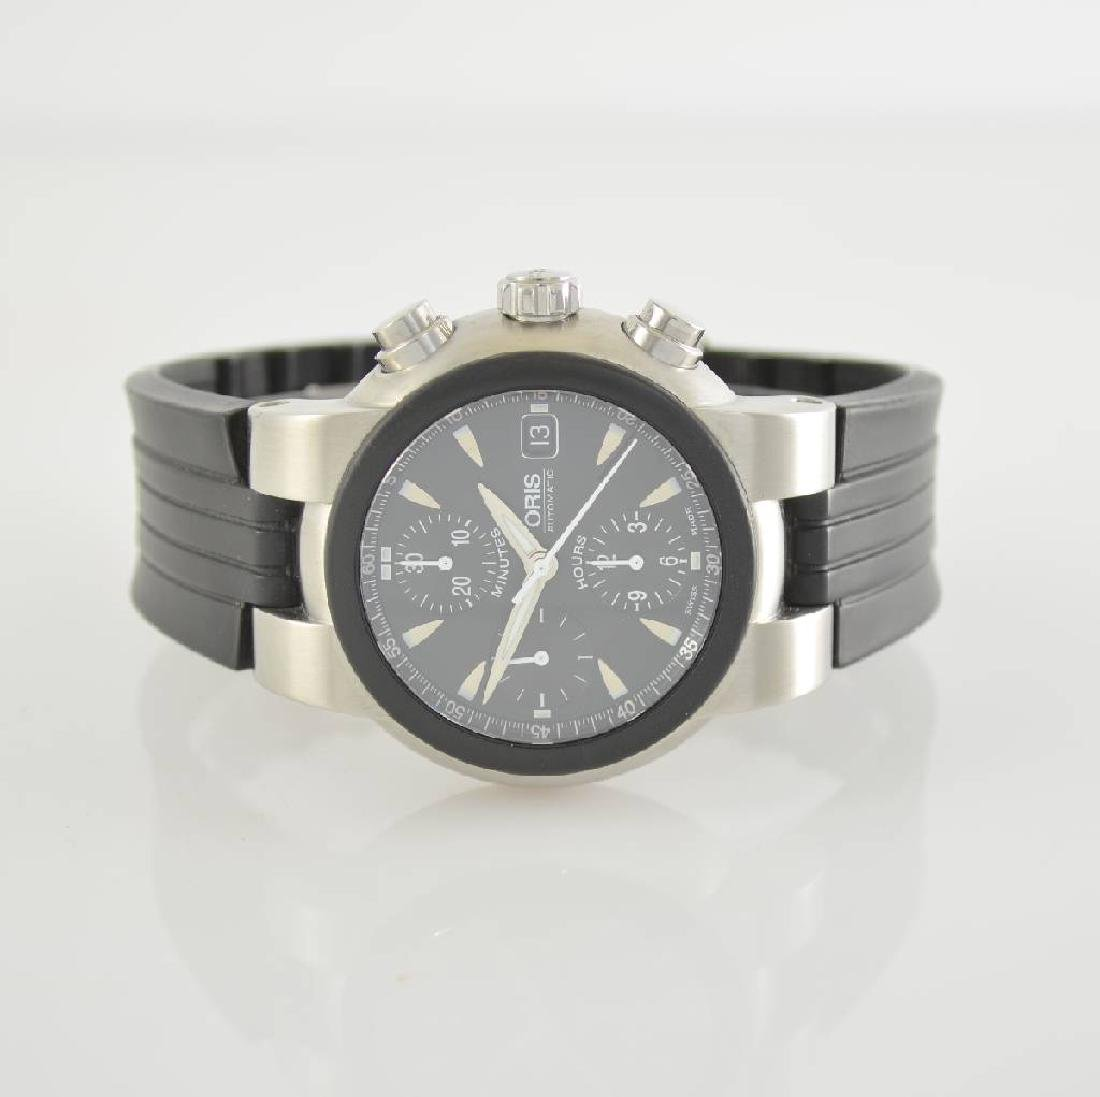 ORIS chronograph TT1, self winding